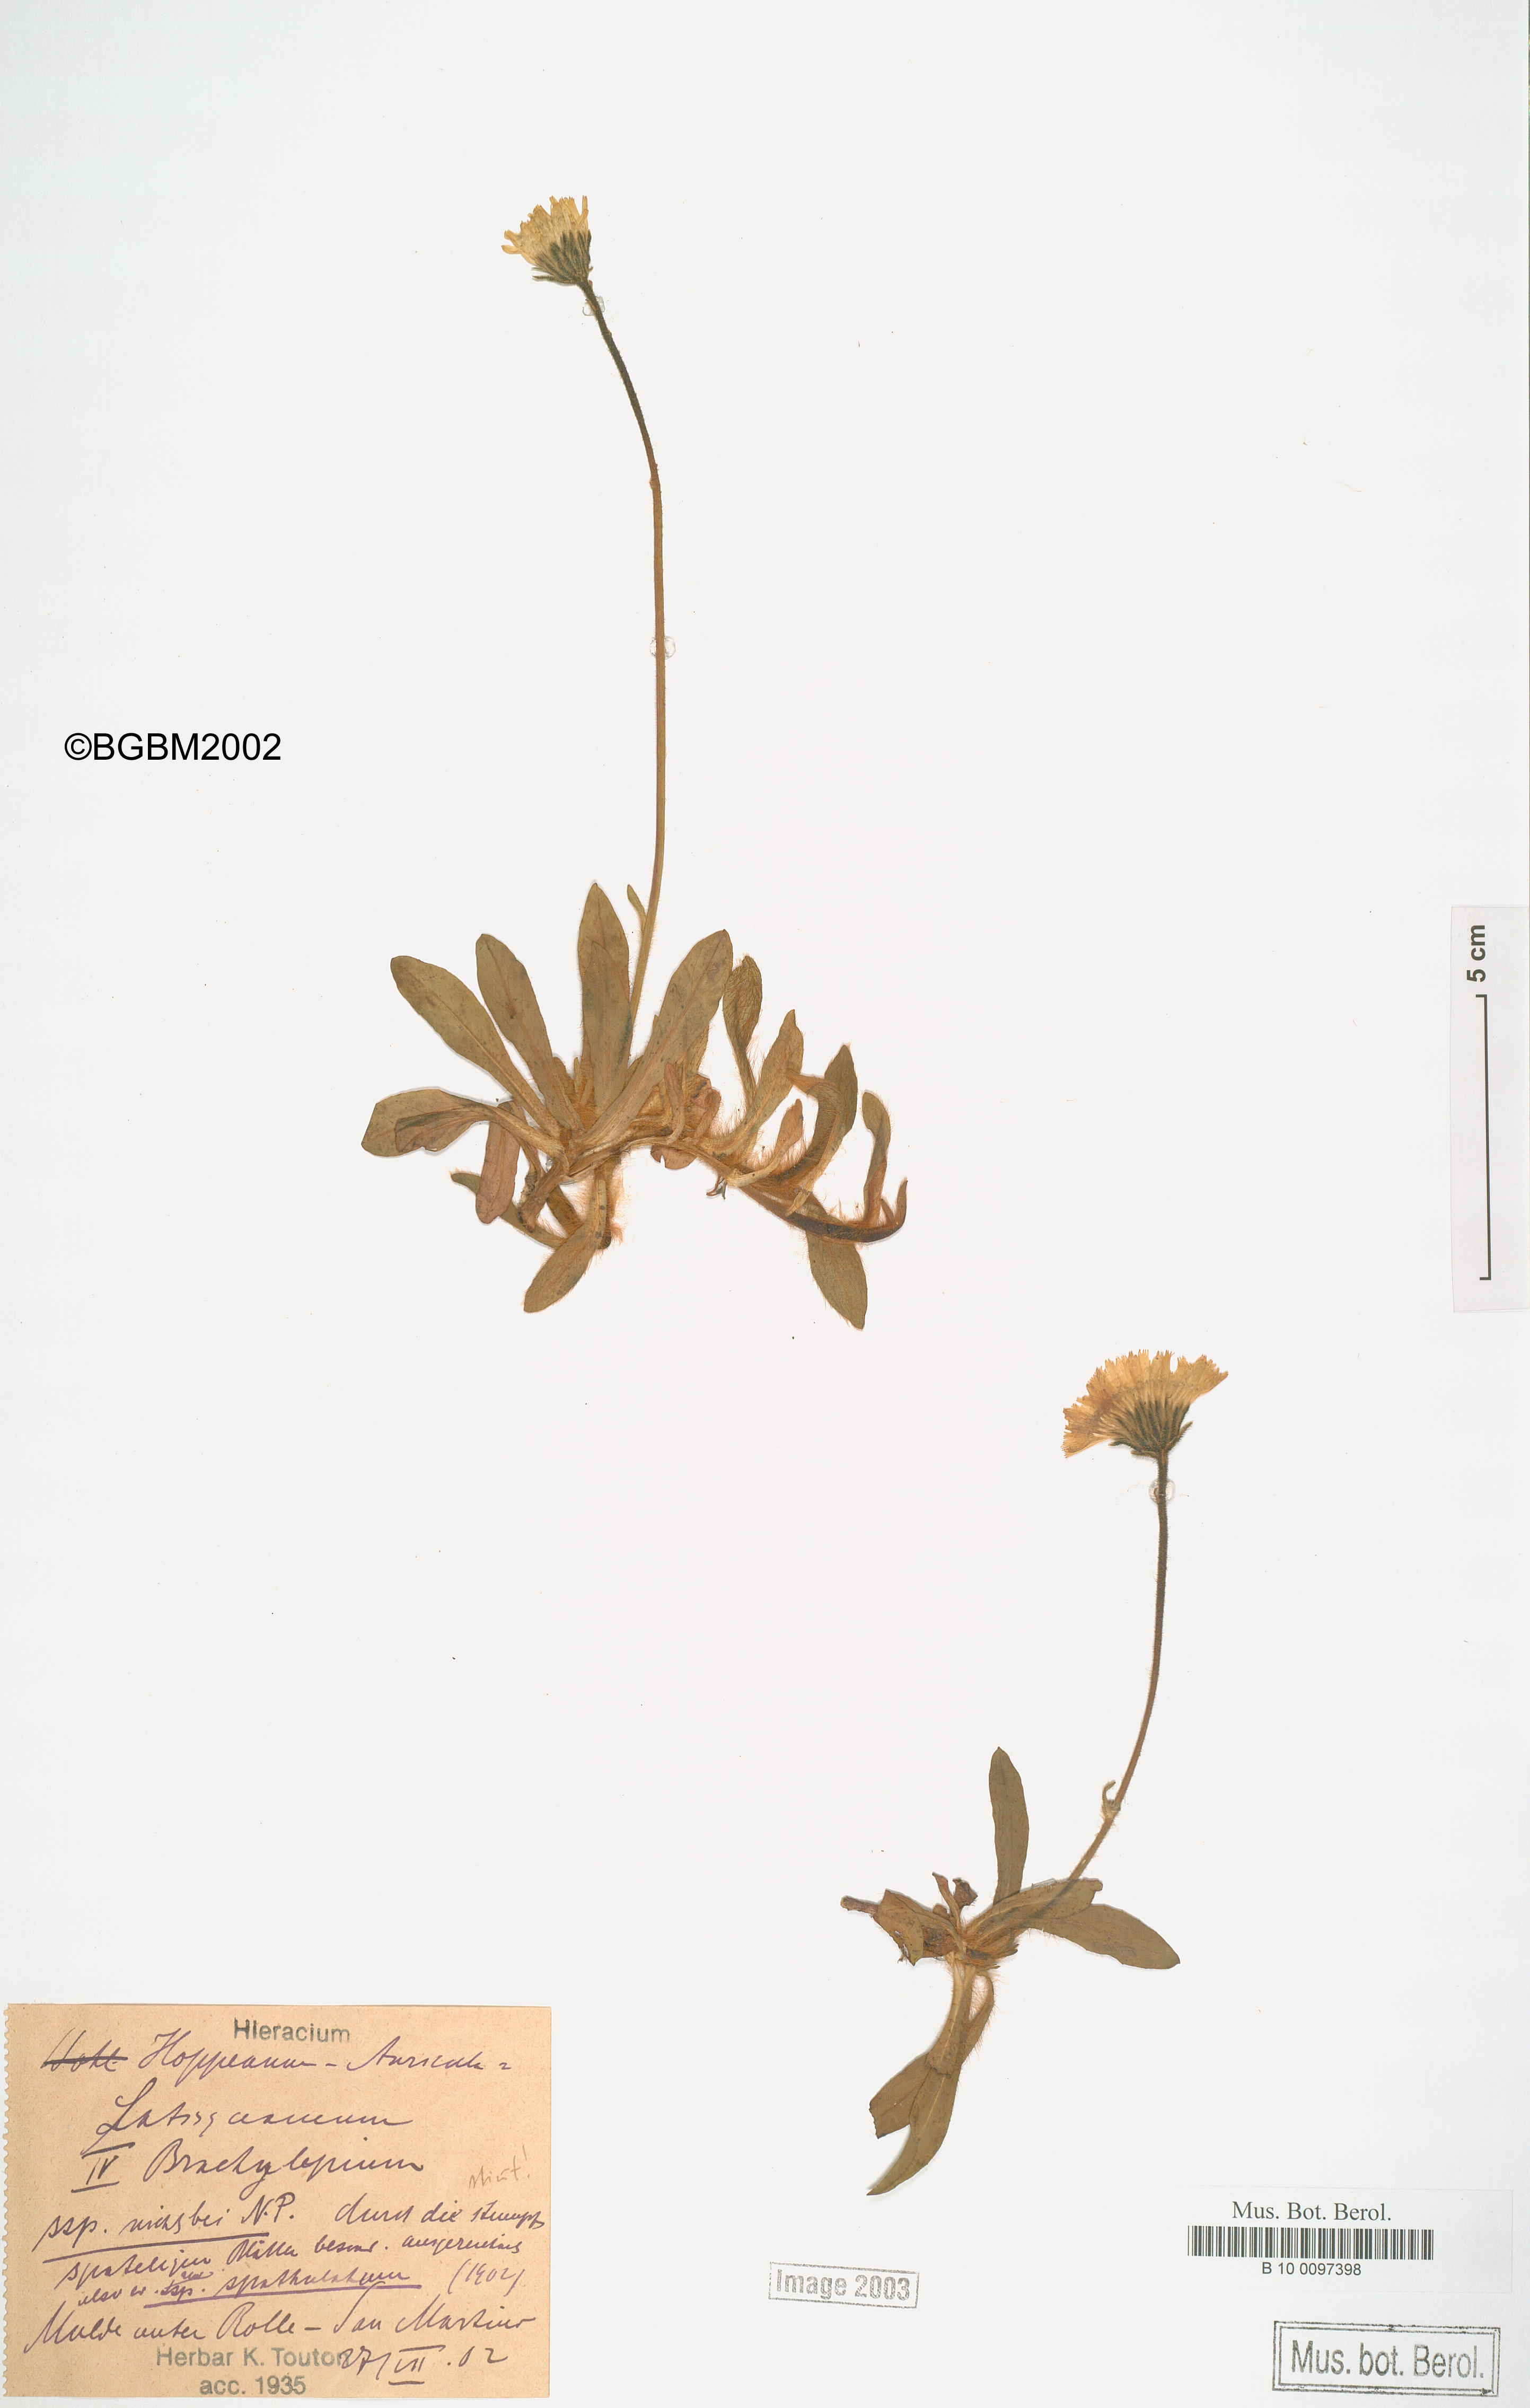 © Botanic Garden and Botanical Museum Berlin-Dahlem, Freie Universität Berlin<br>by  Röpert, D. (Ed.) 2000- (continuously updated): Digital specimen images at the Herbarium Berolinense. - Published on the Internet http://ww2.bgbm.org/herbarium/ (Barcode: B 10 0097398 / ImageId: 215435) [accessed 24-Nov-11].<br>